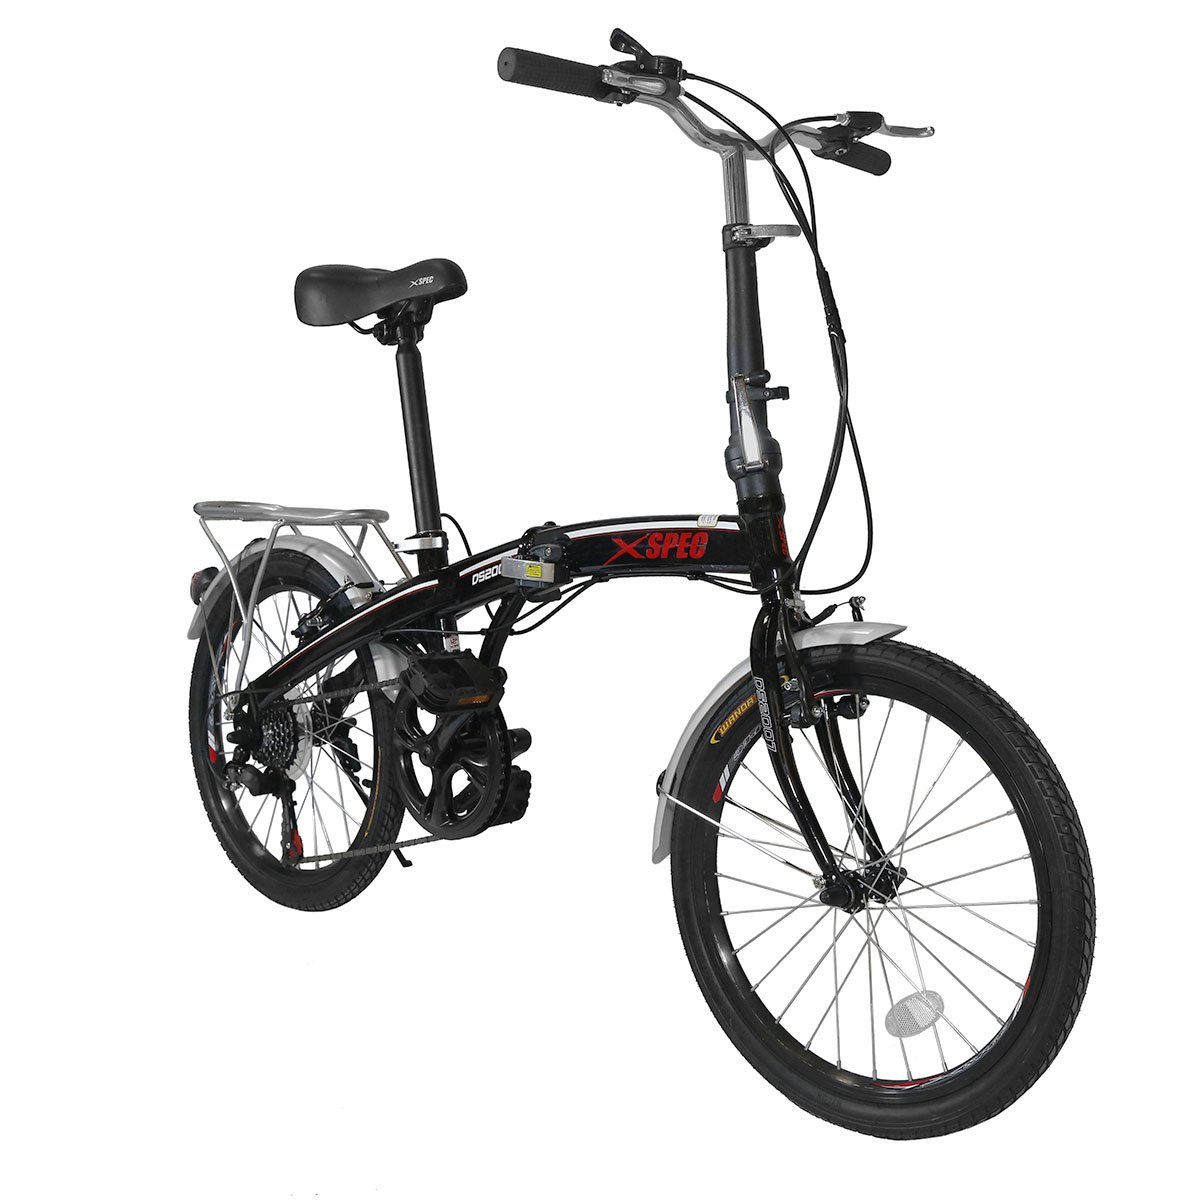 Xspec 20'' 7 Speed City Folding Mini Compact Bike Bicycle Urban Commuter Shimano Black